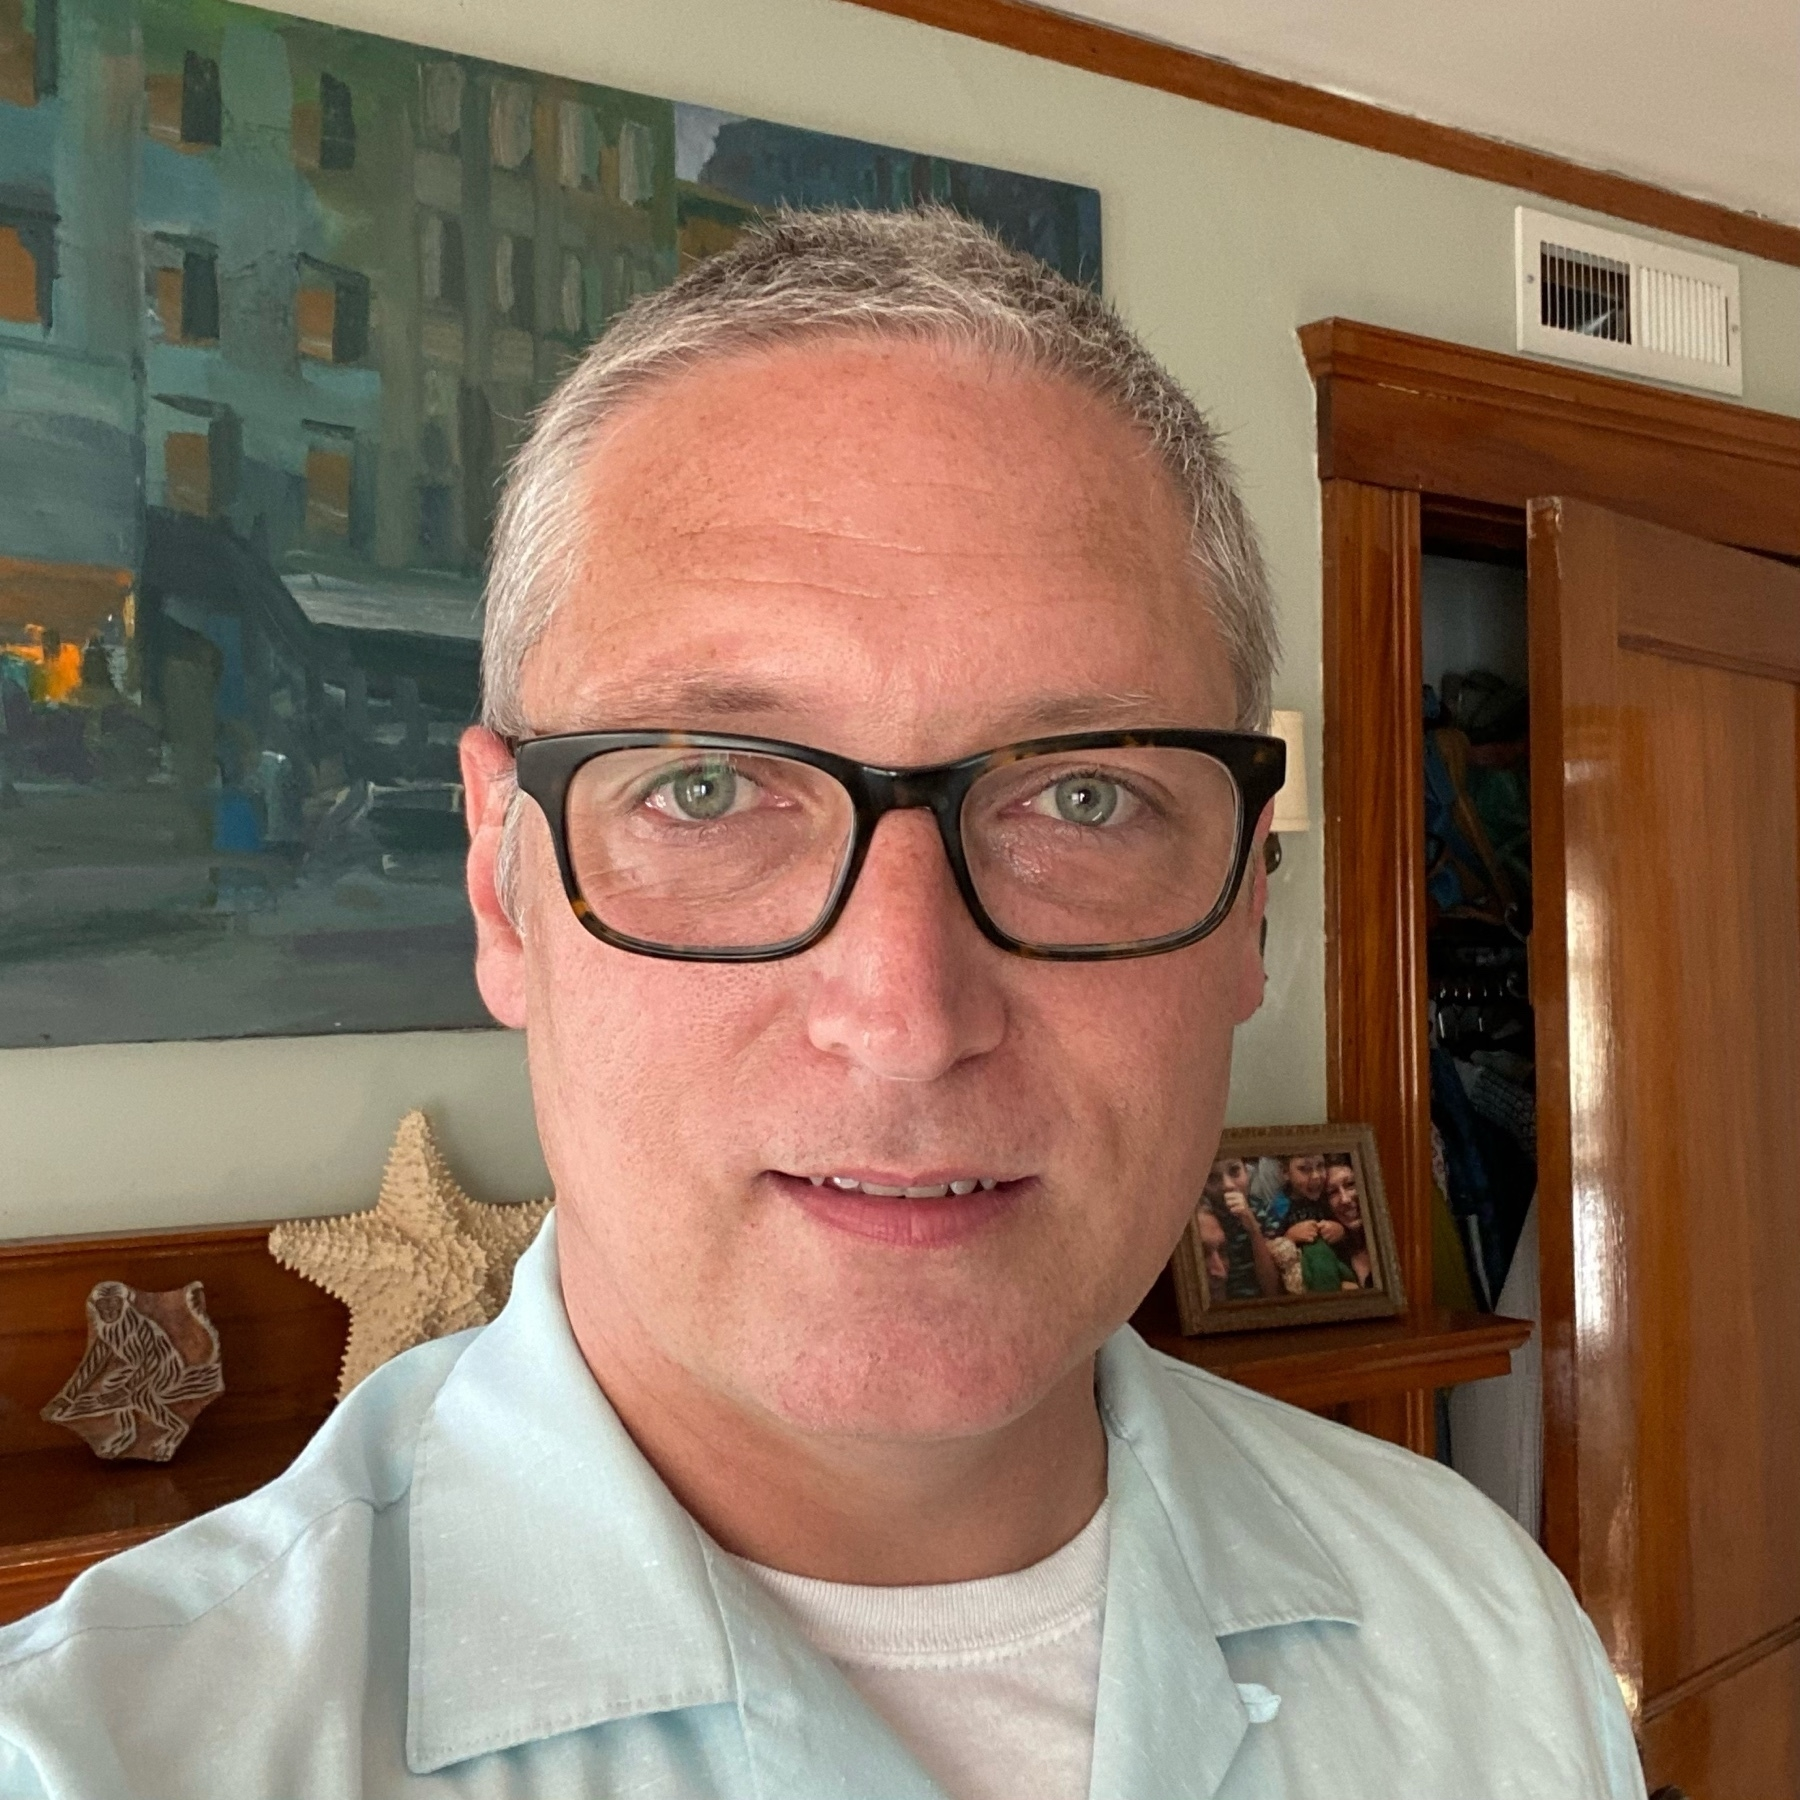 self portrait clean shaven with short greying hair, glasses, and a vintage button-up shirt